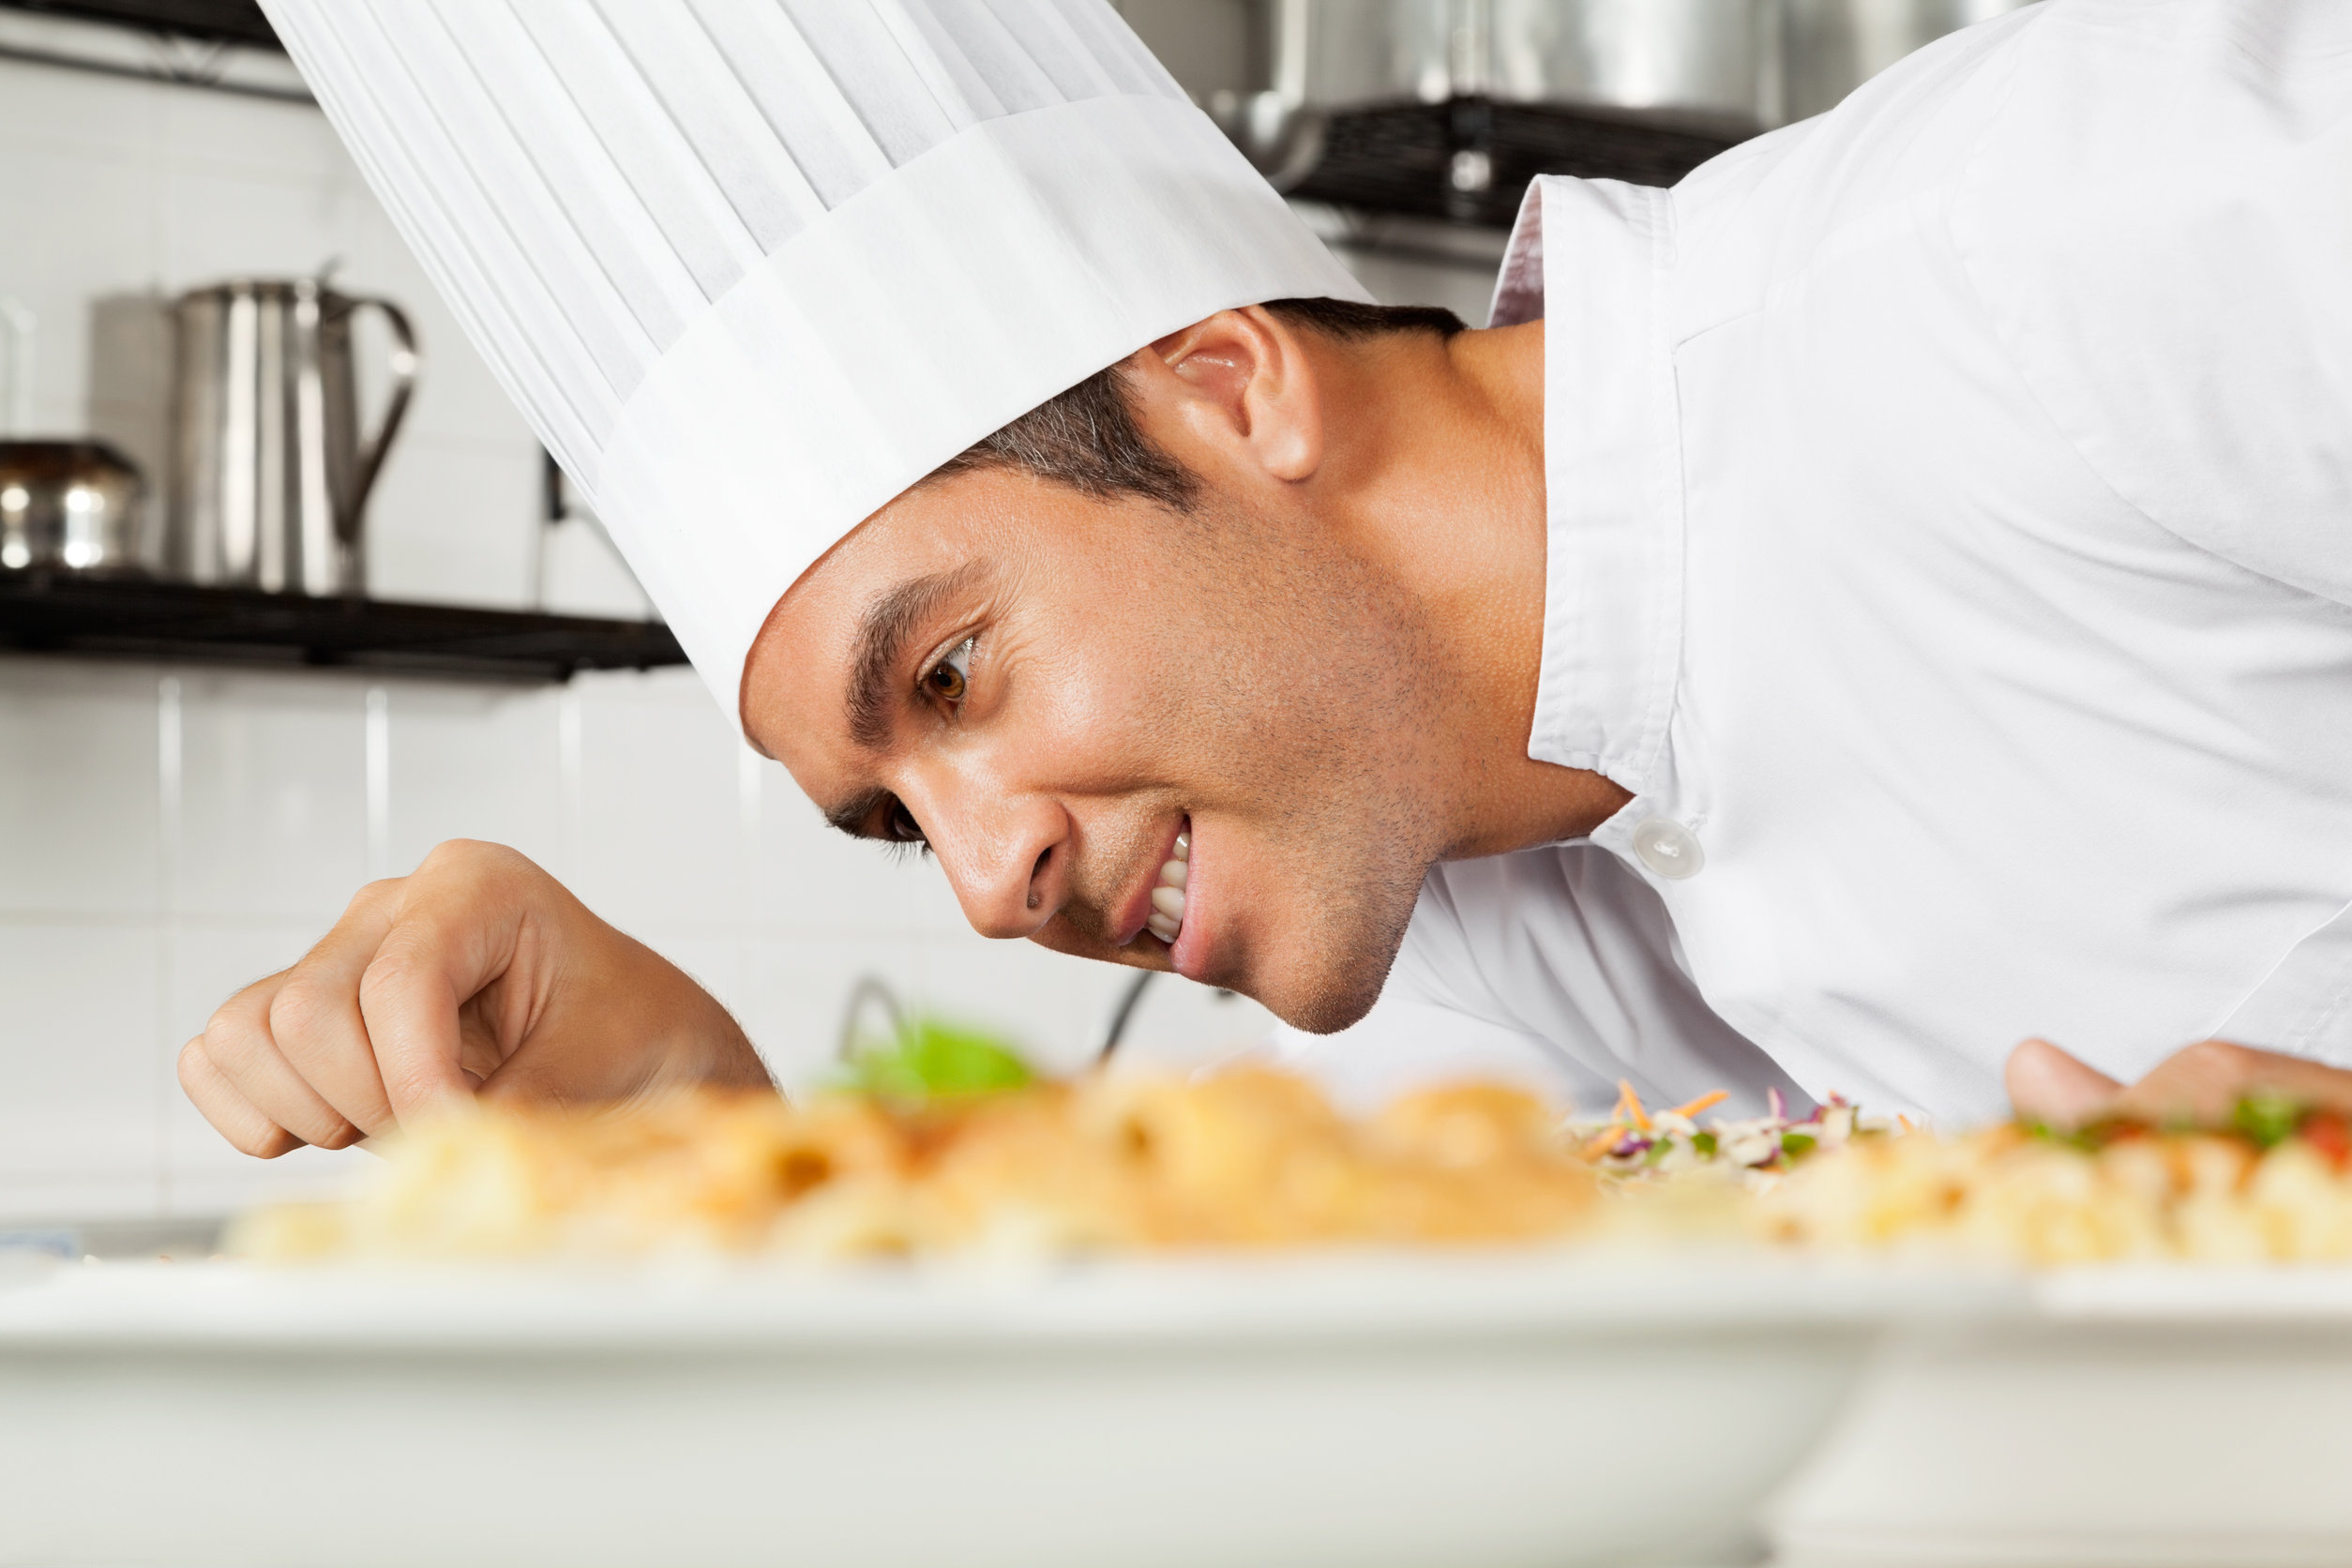 What is a chef hierarchy